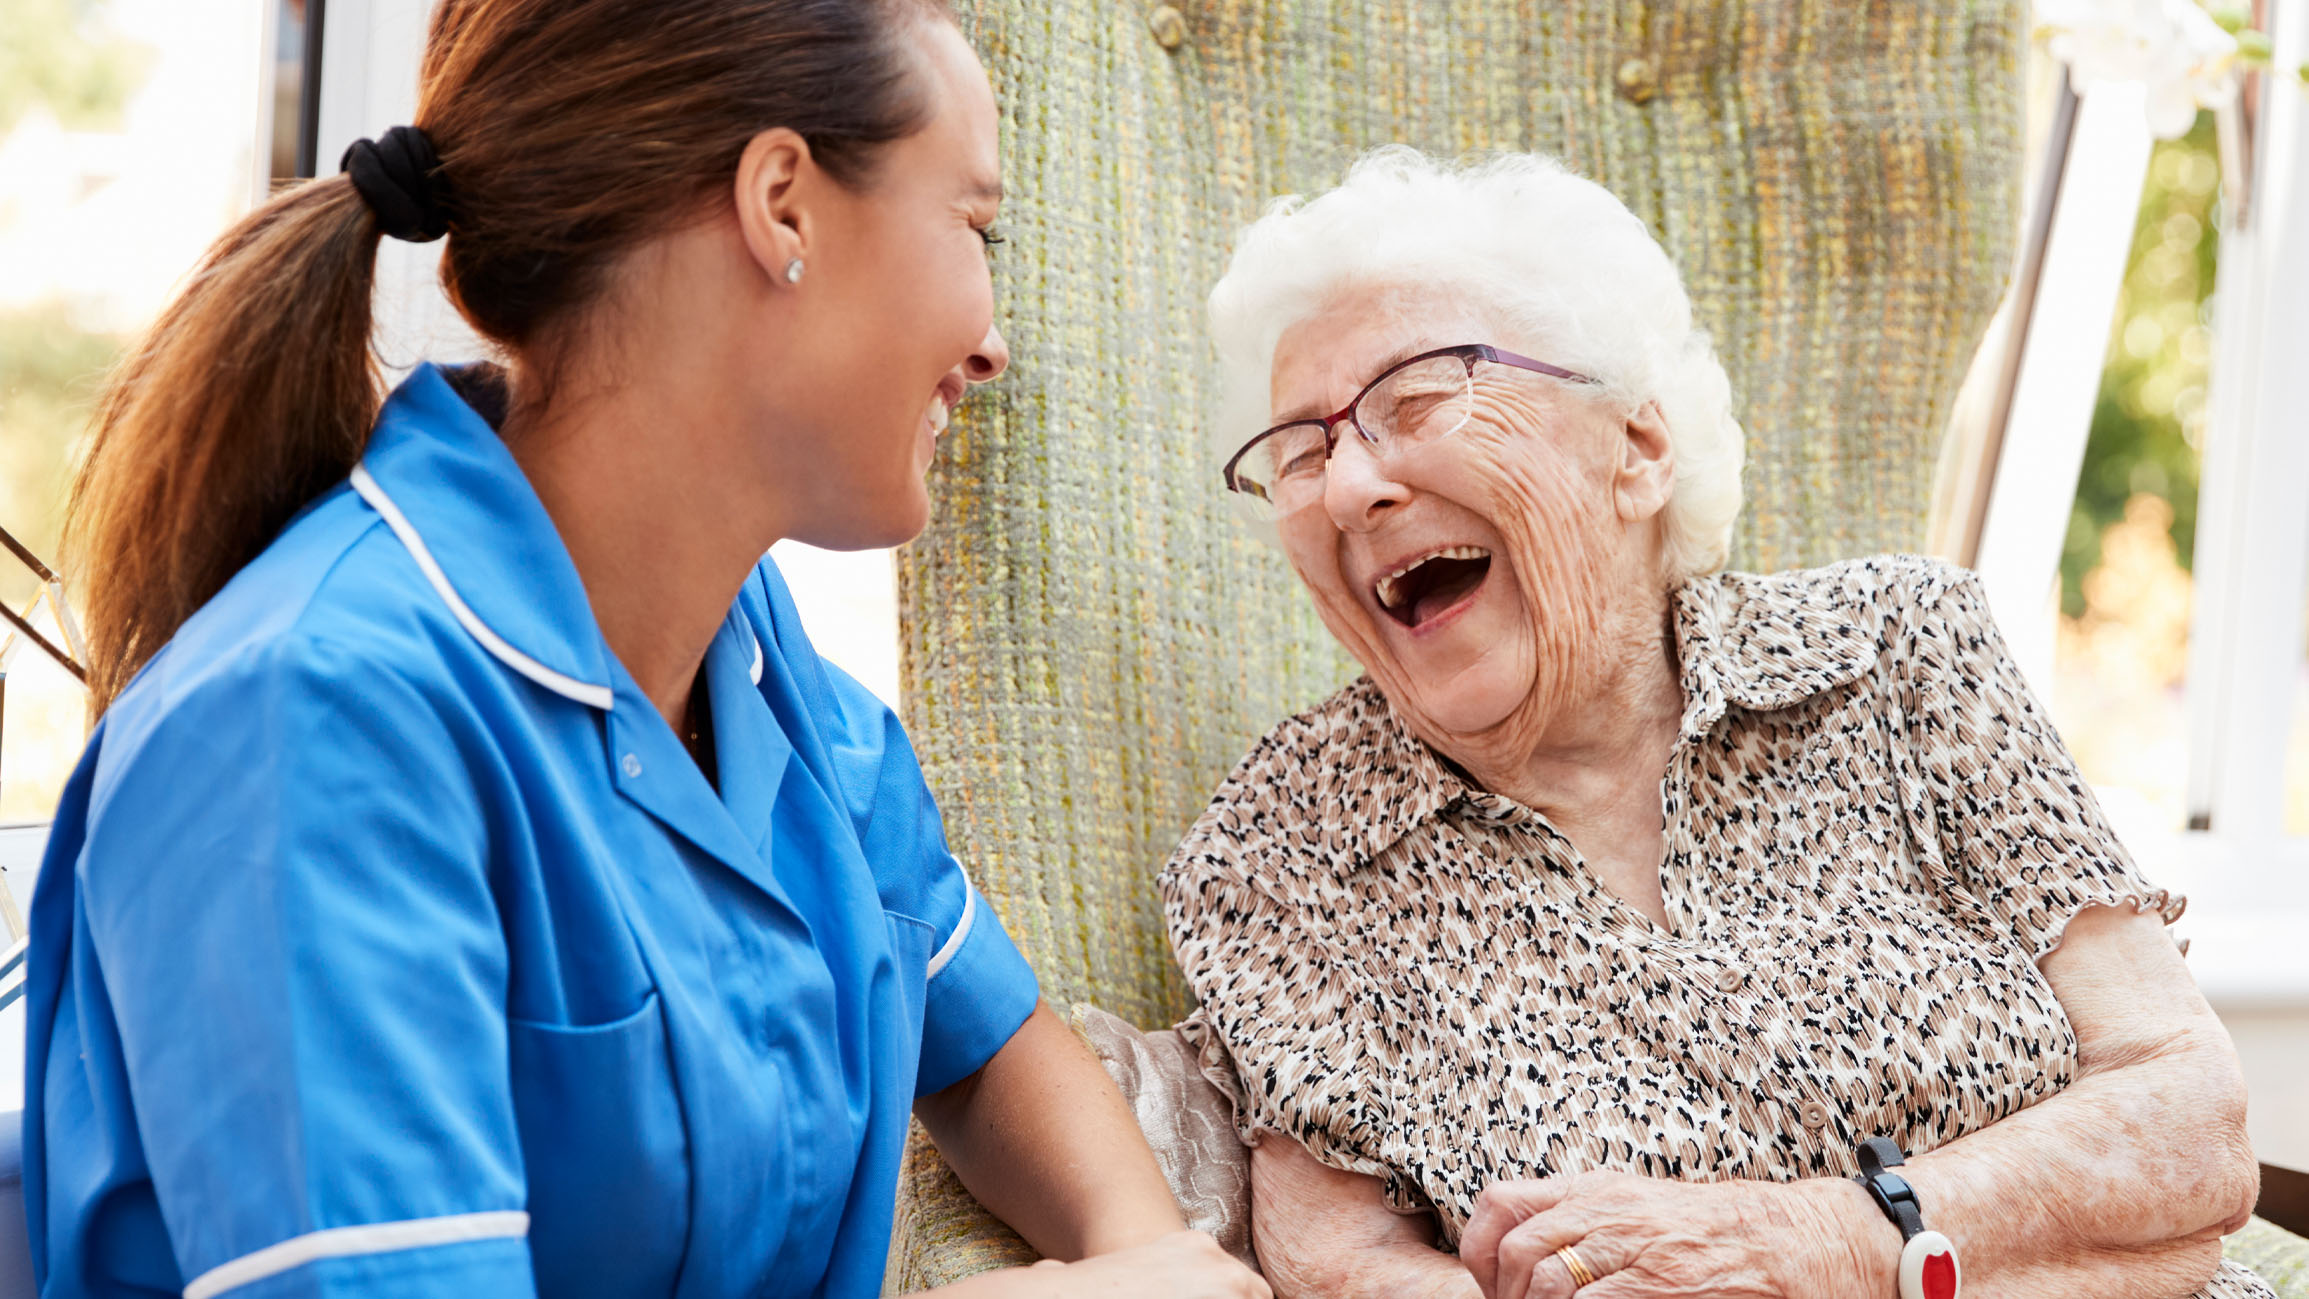 Medical professional and older woman laughing together